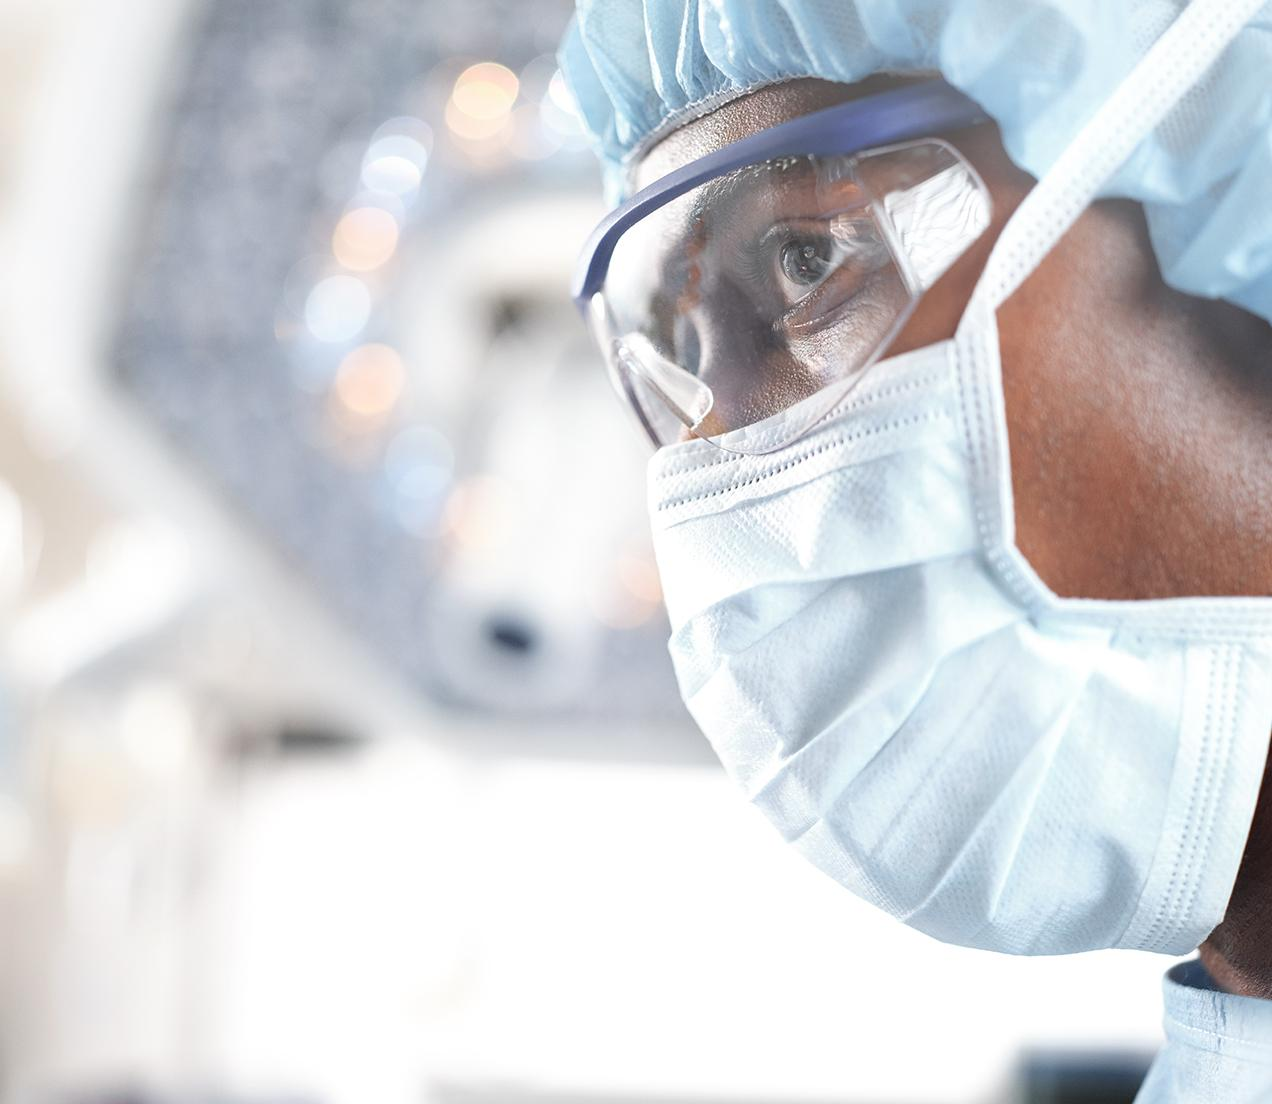 close-up image of surgeon in an operating room